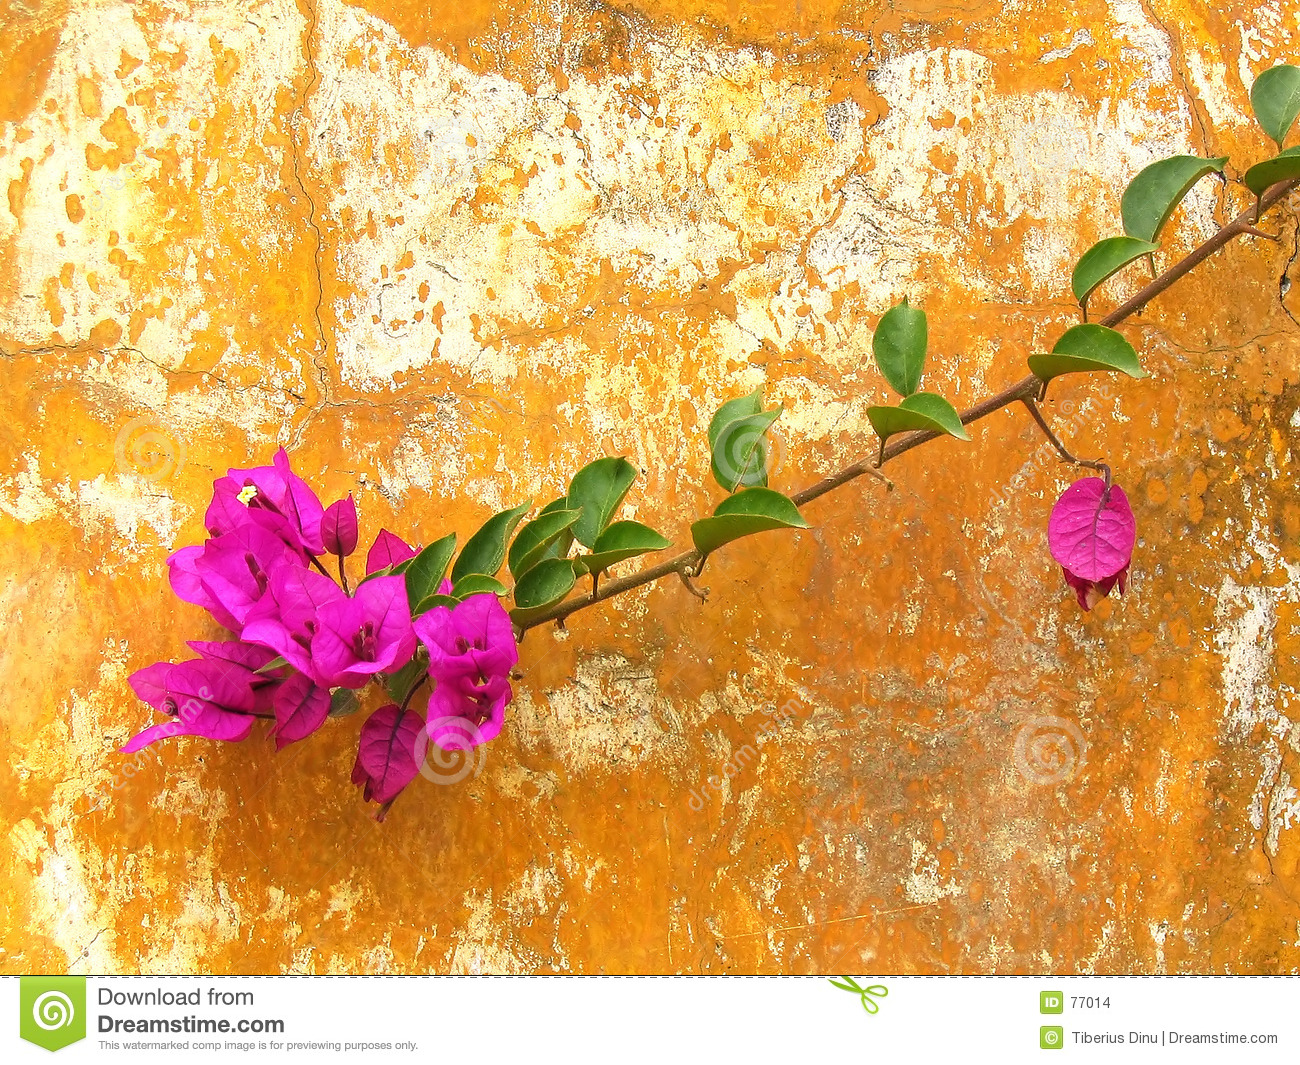 Flower on a rusty wall